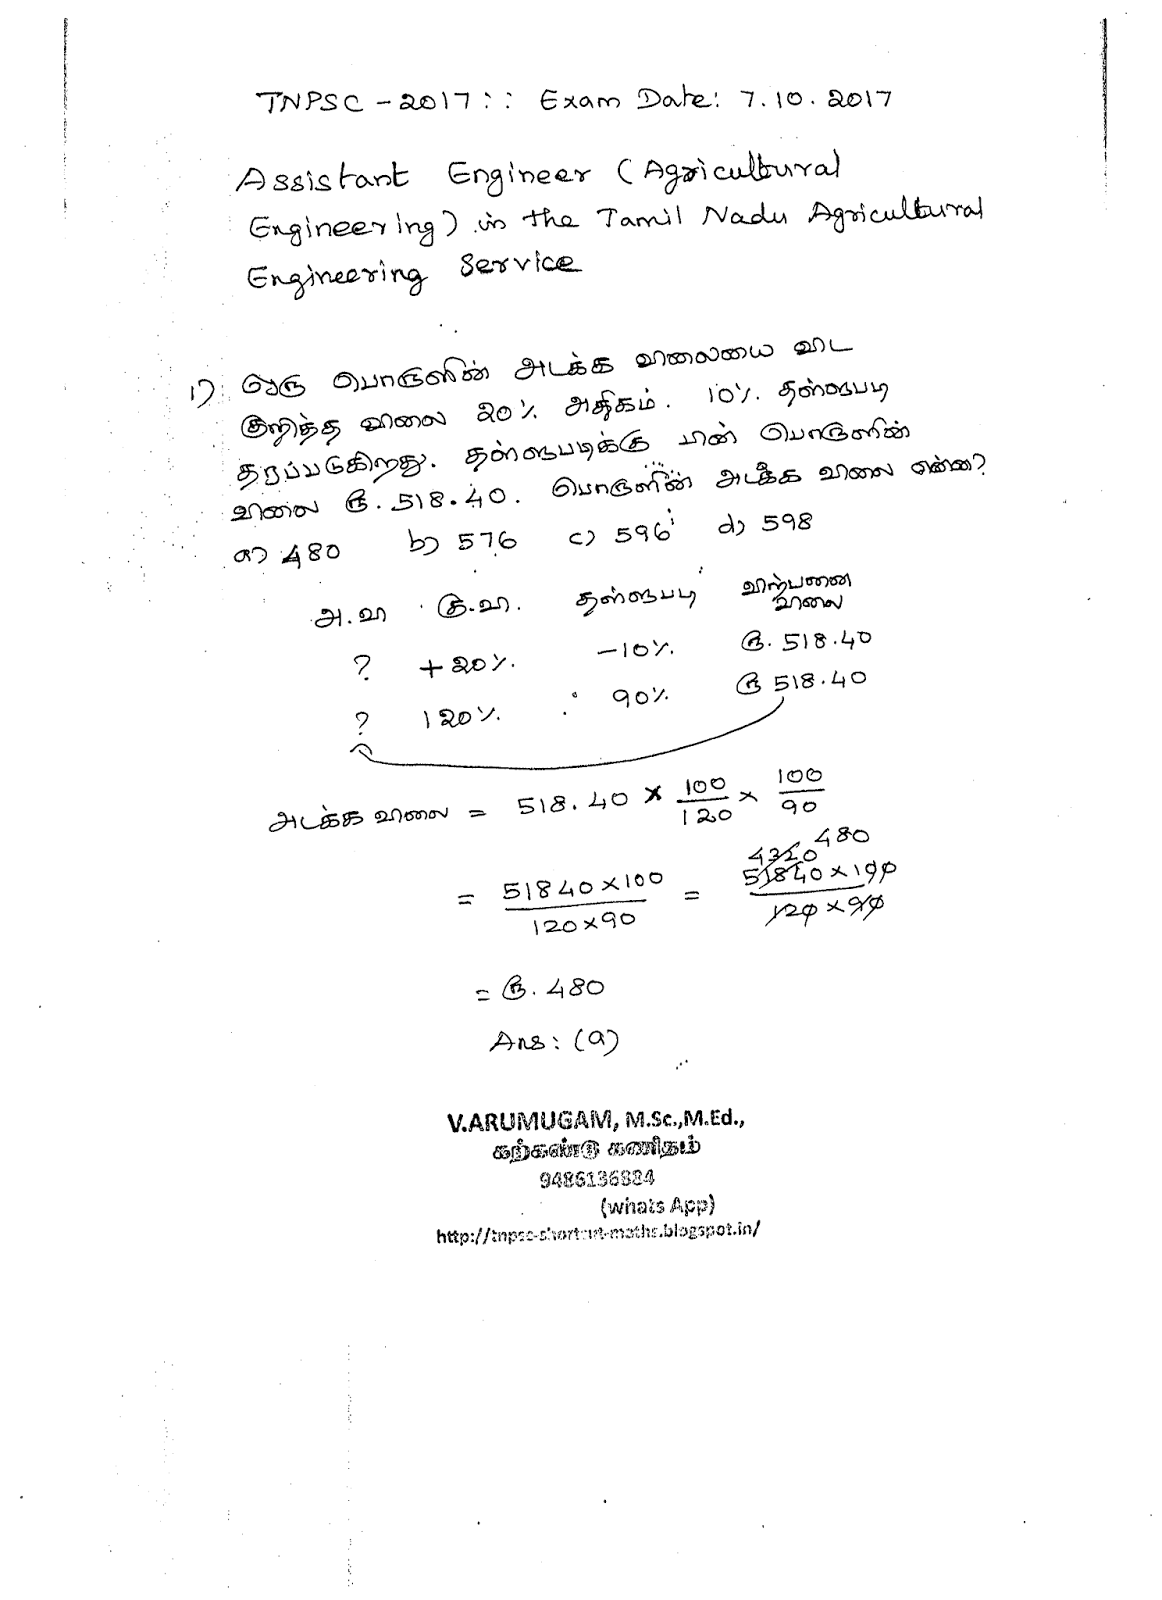 TNPSC-2017-ASSISTANT ENGINEER (AGRICULTURAL ENGINEERING) IN THE TAMIL NADU AGRICULTURAL ENGINEERING SERVICE EXAM-EXAM DATE: 07.10.2017